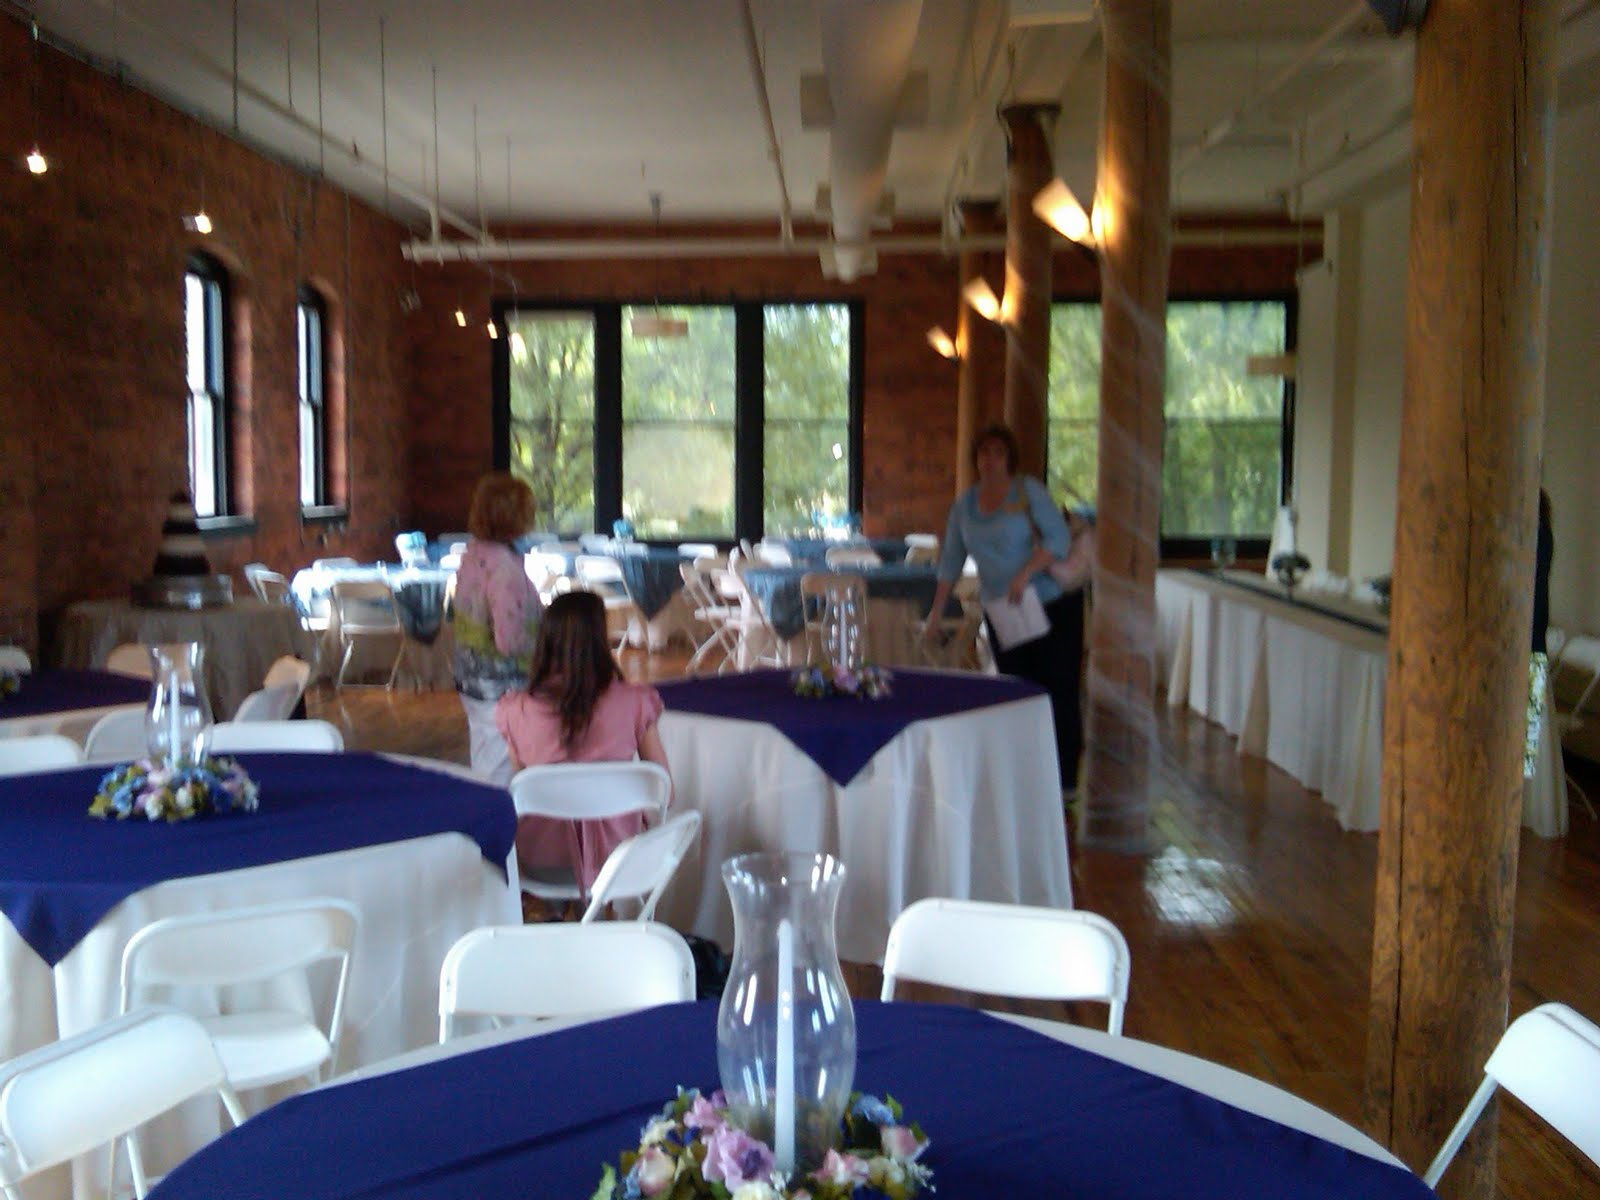 The Willrich Wedding Planneru0026#39;s Blog A New Reception Venue In Downtown Greenville SC - The Loft ...